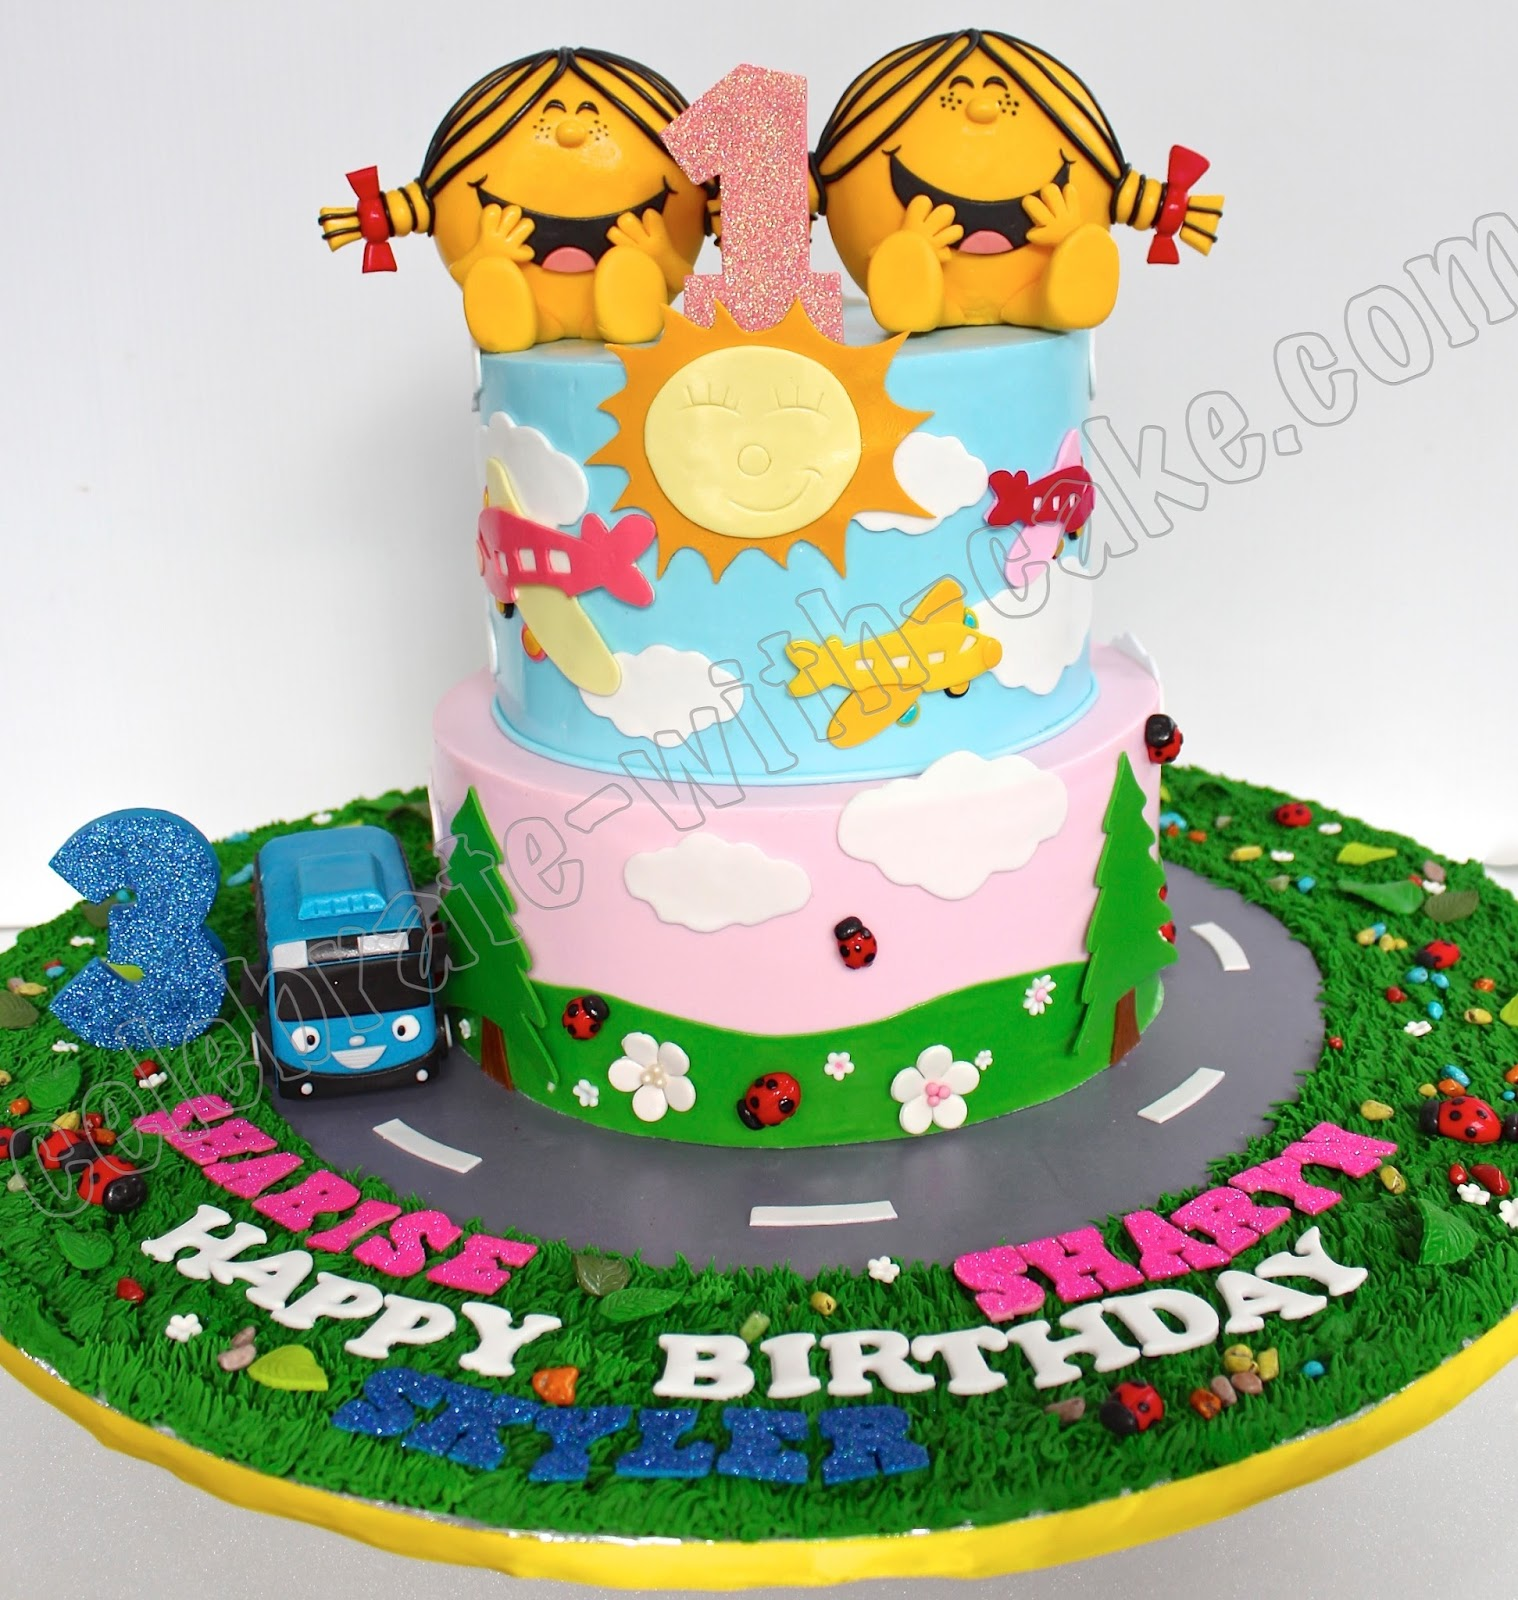 Celebrate With Cake Twins Little Miss Sunshine Tier Cake - Little miss birthday cake